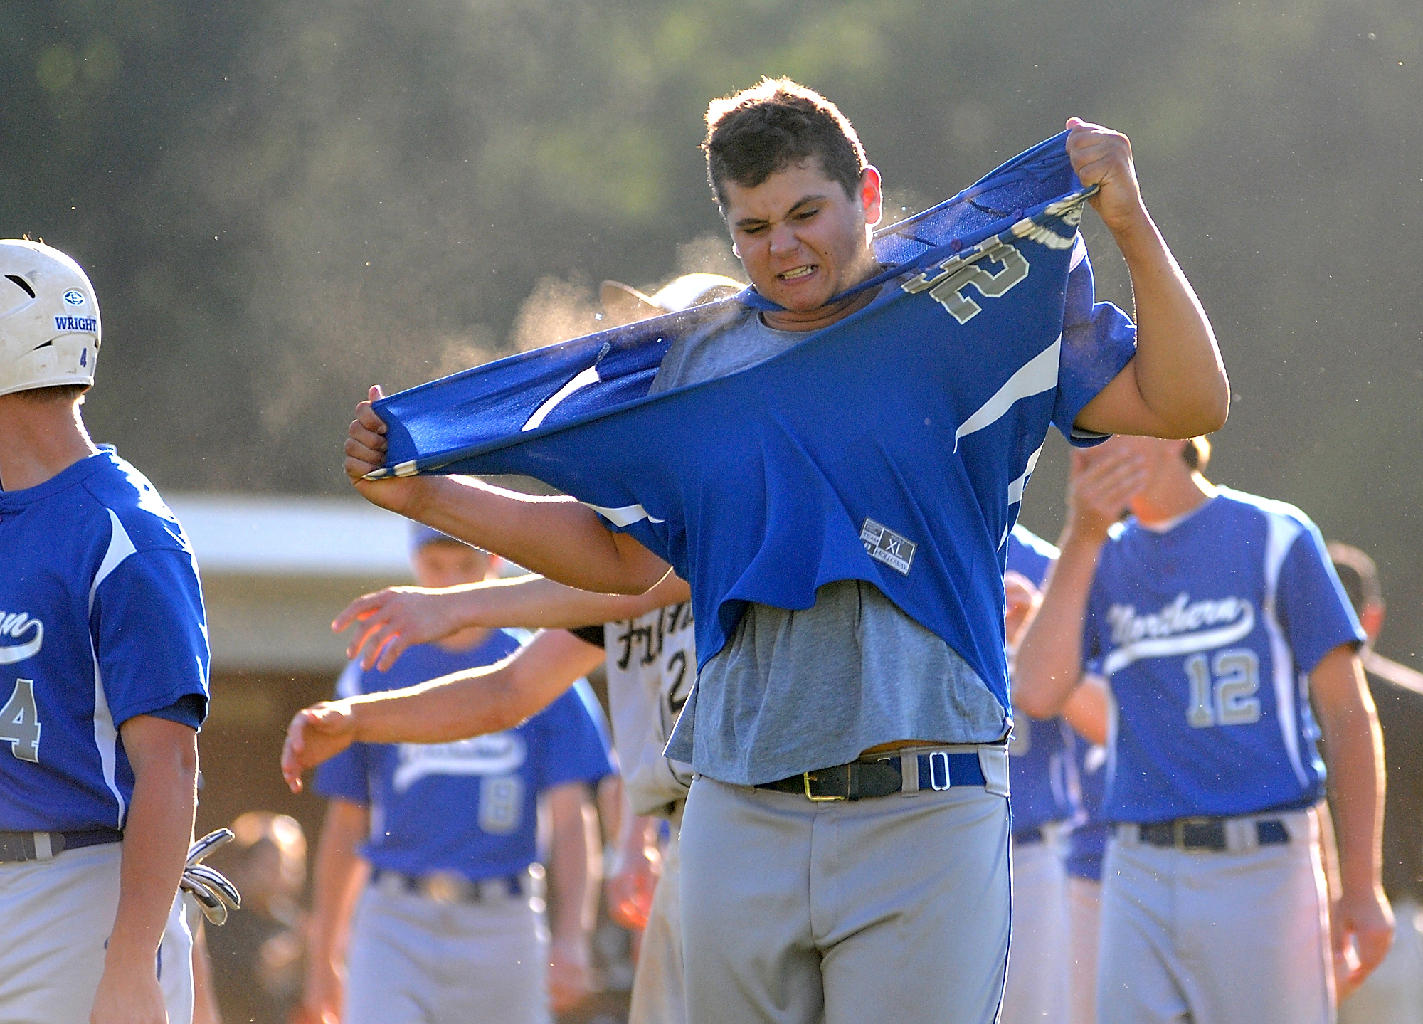 Northern Burlington's Zach Gakeler (32) rips his jersey immediately following their last out of the game, losing their state Group 3 semifinal game at Rider University in Lawrencville, NJ to Burlington Township on Tuesday, June 4, 2013.